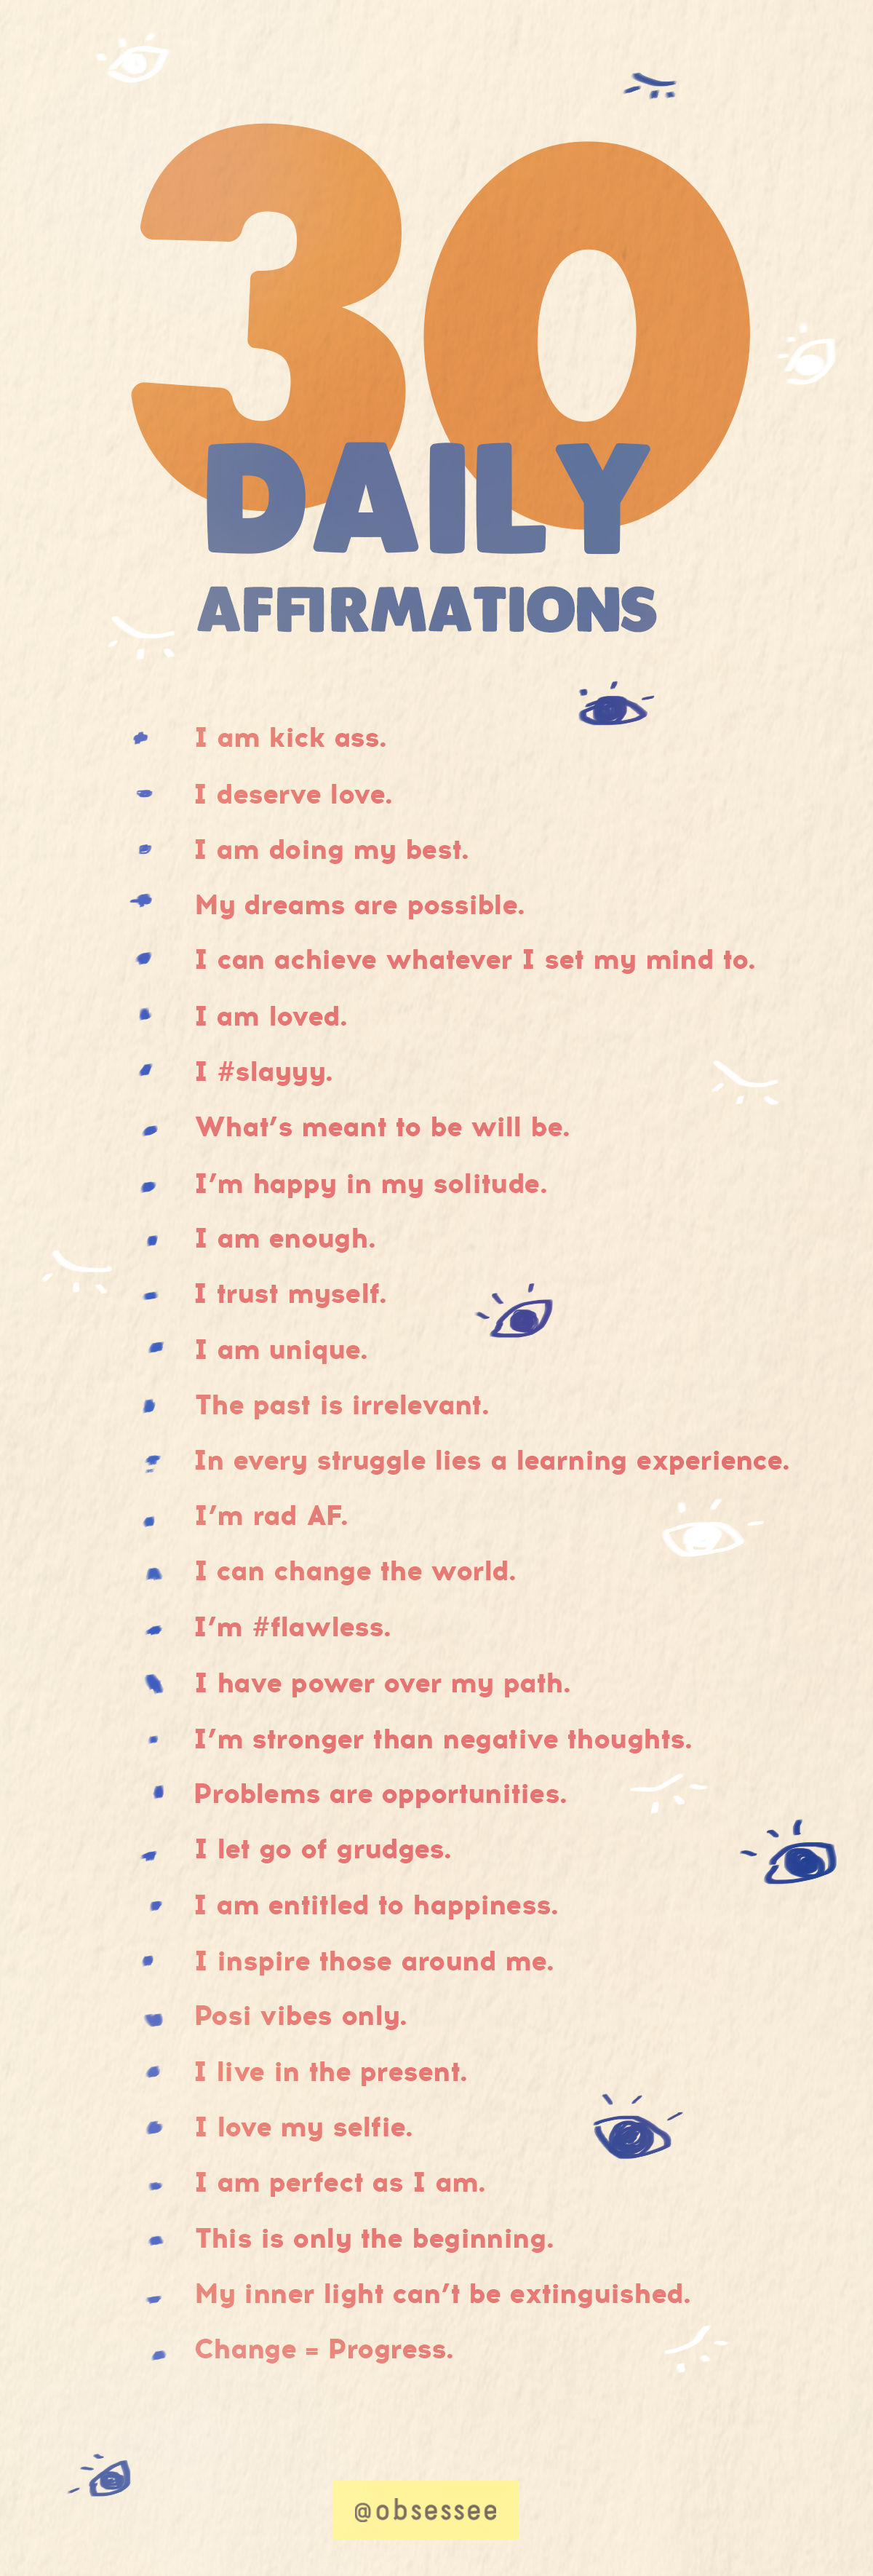 Worksheet Of Daily Affirmations